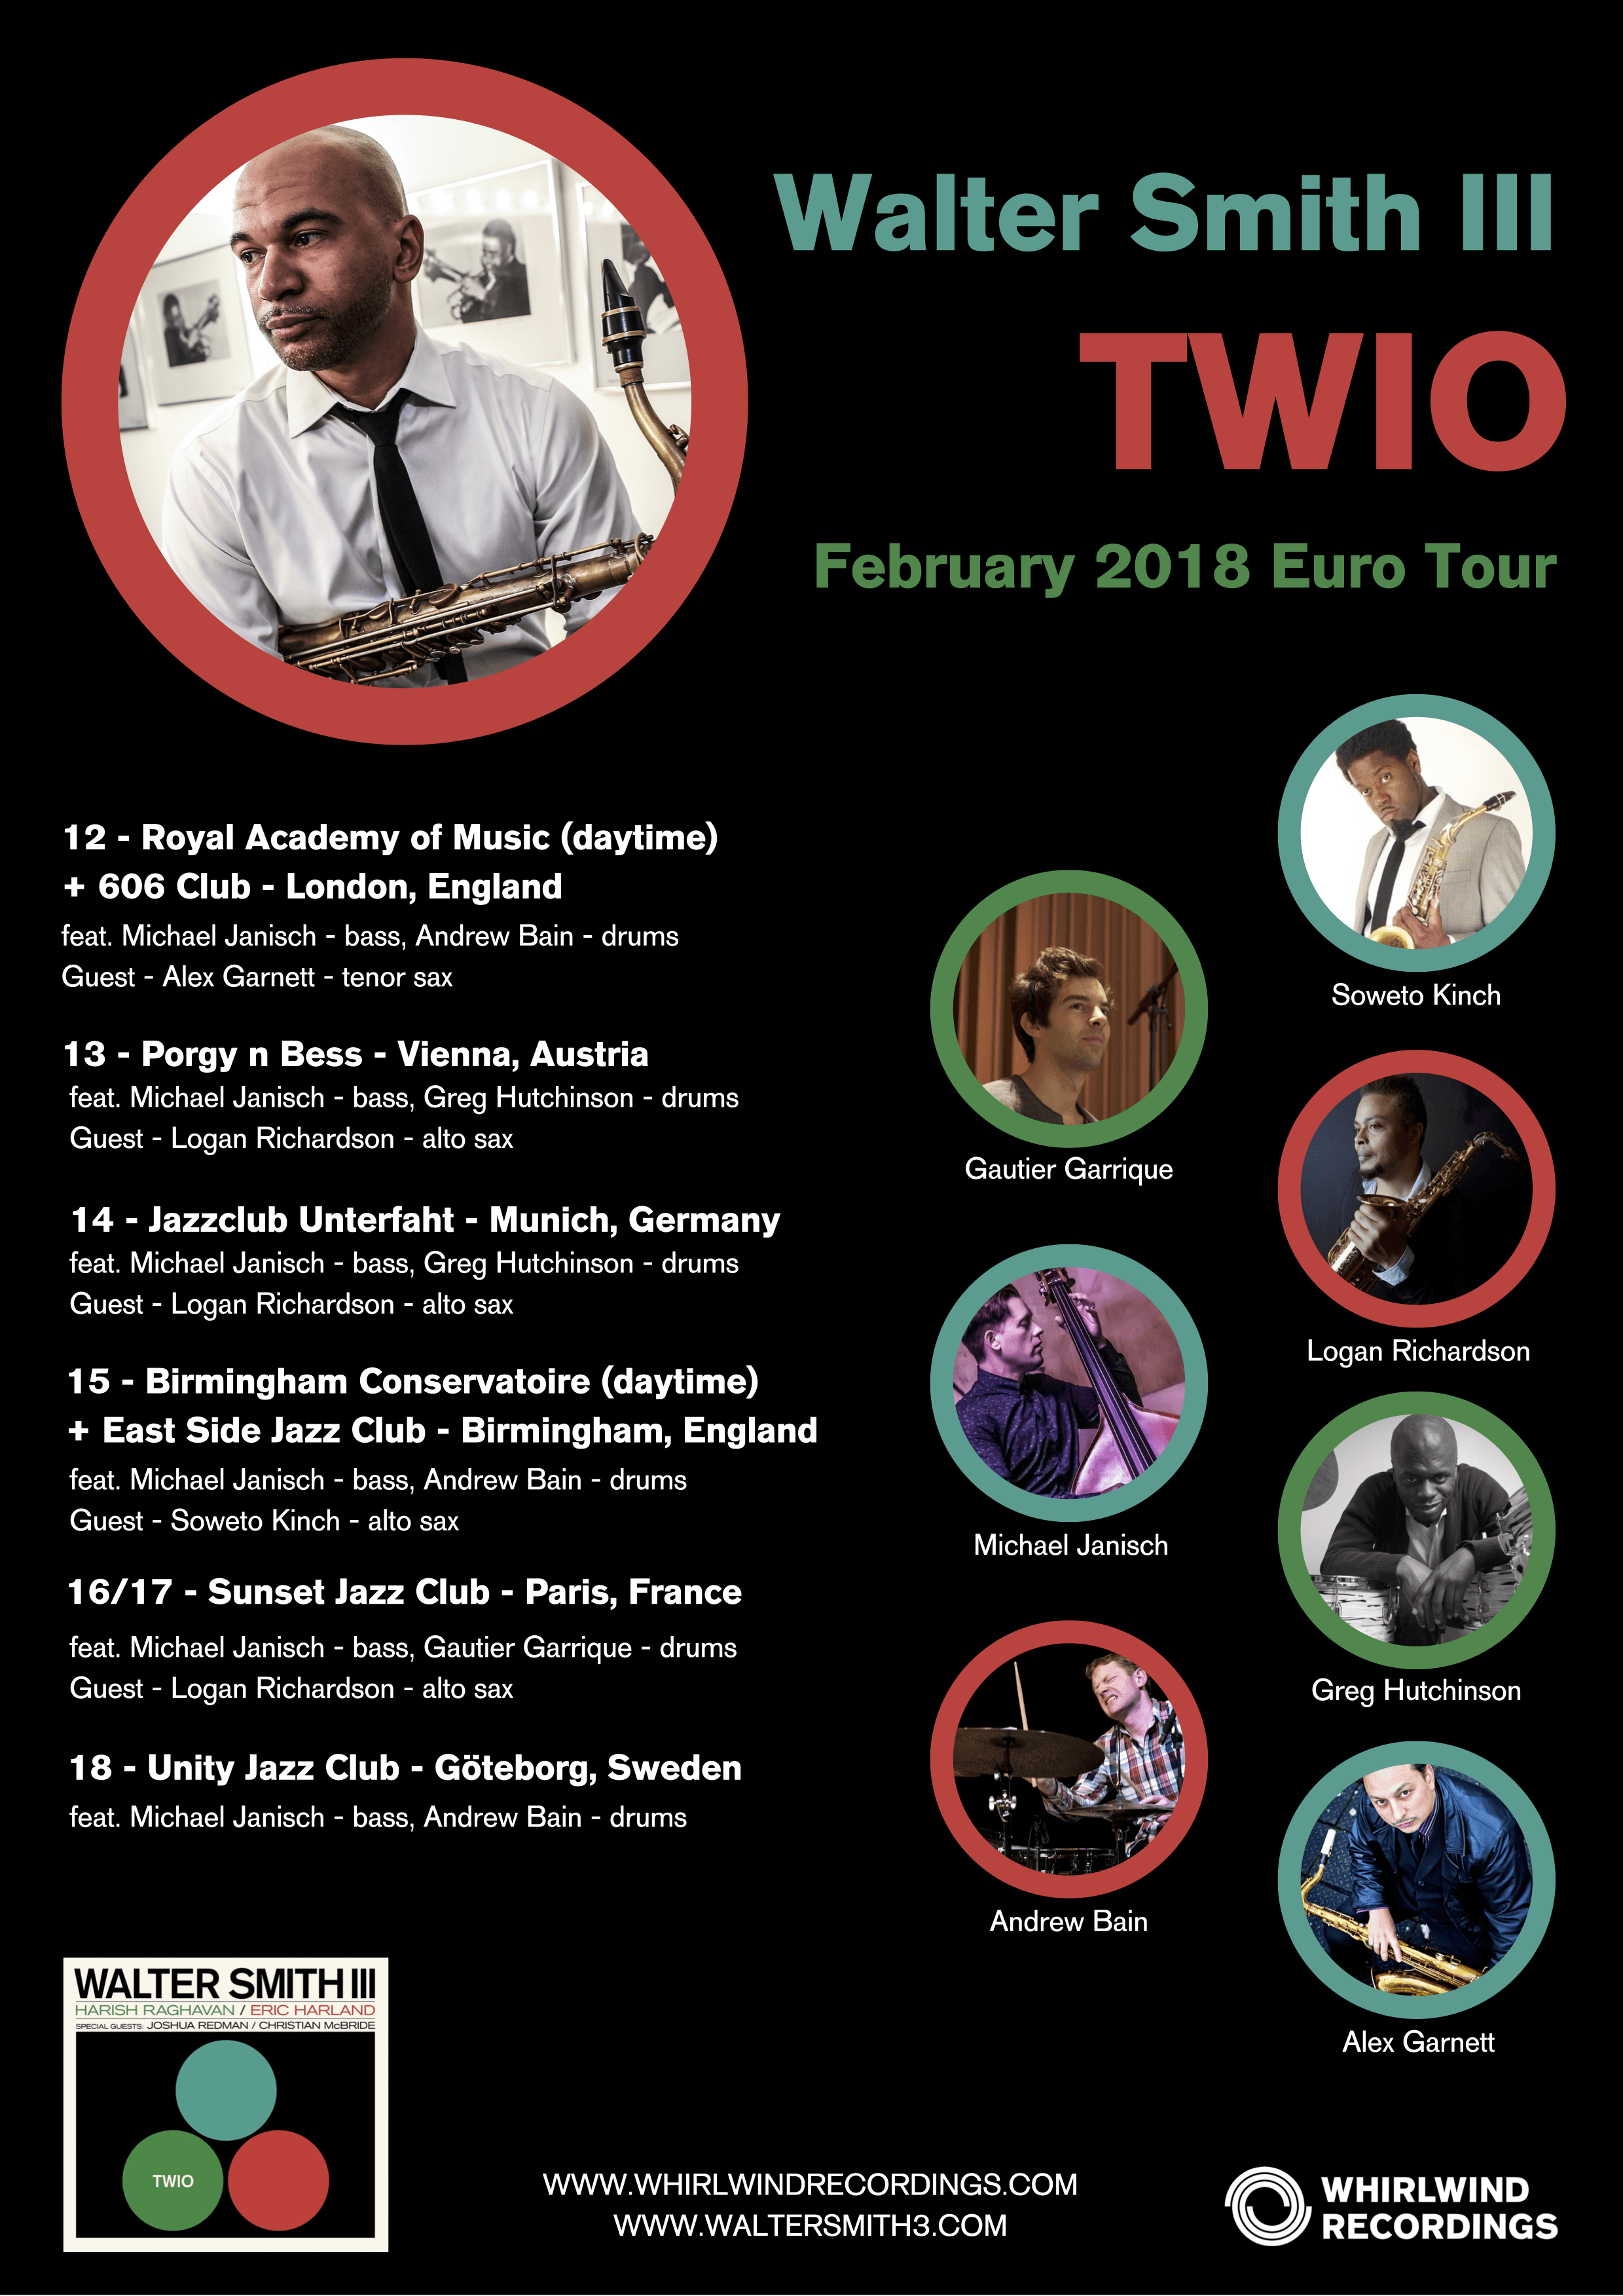 Walter Smith III Euro Tour 2018 for 'Twio' - dates & guests